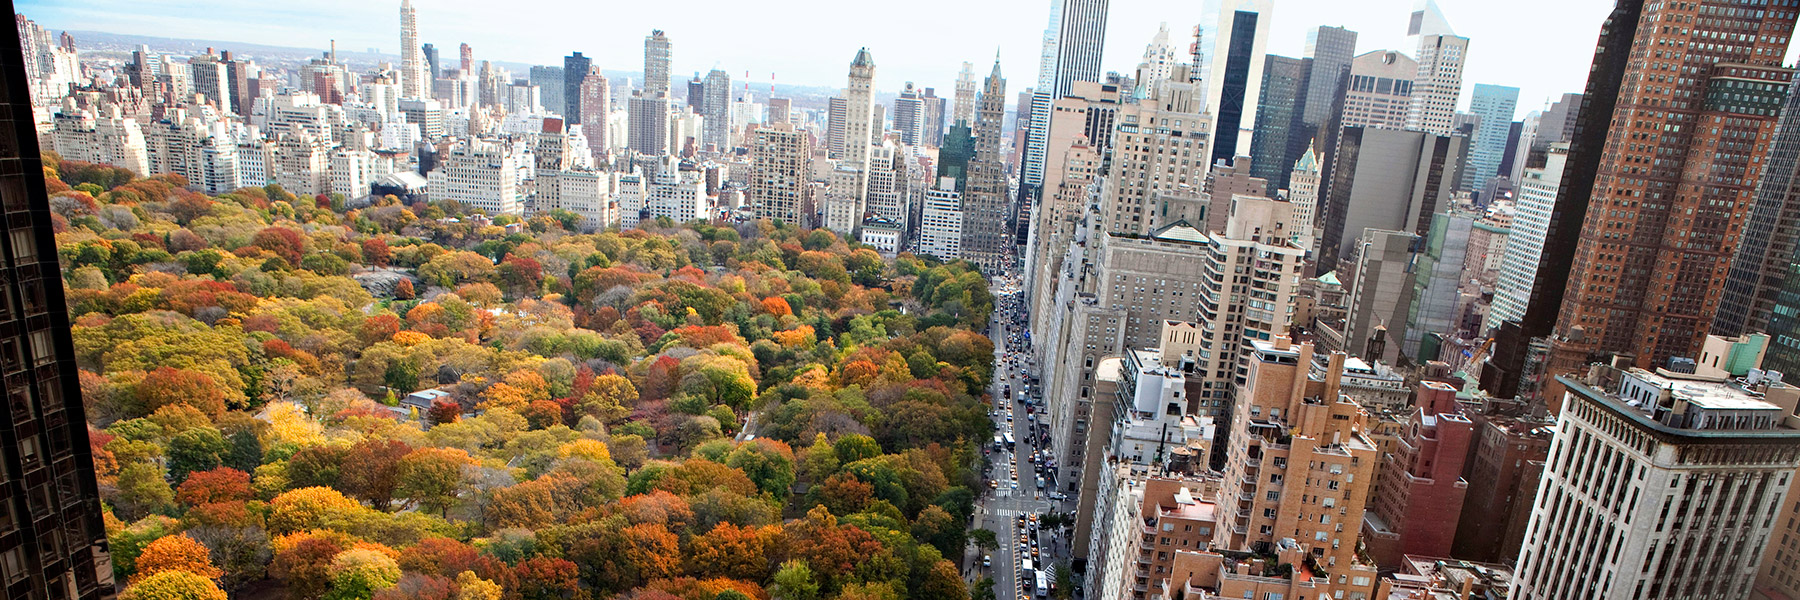 NEW YORK: autunno in Central Park